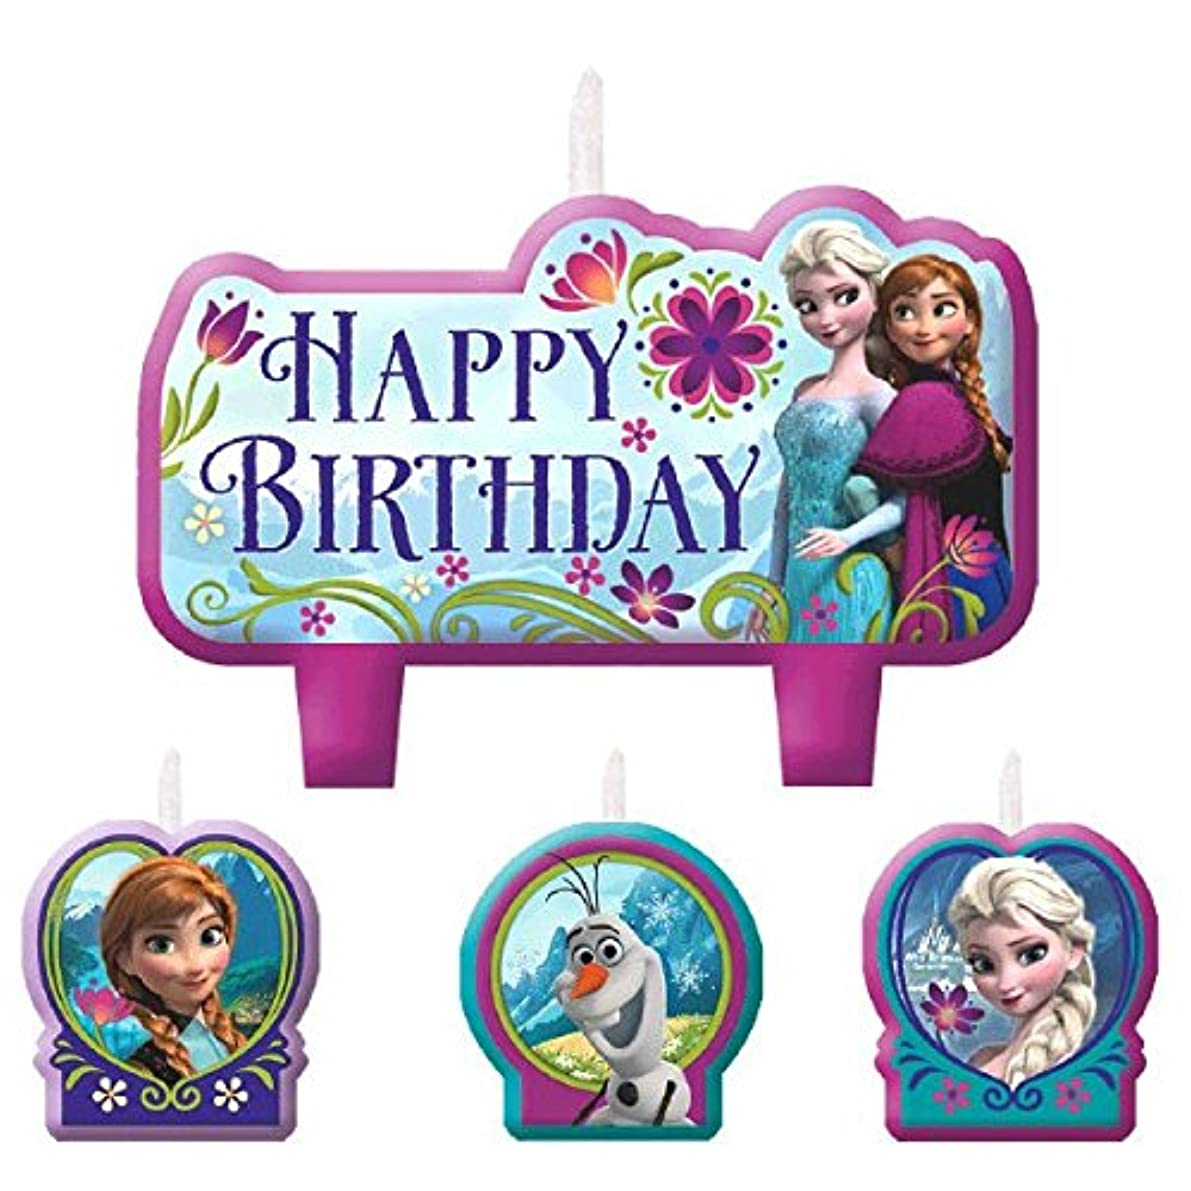 AMSCAN 171416 Birthday Candle Set | Disney Frozen Collection | Party Accessory, 2 3/10